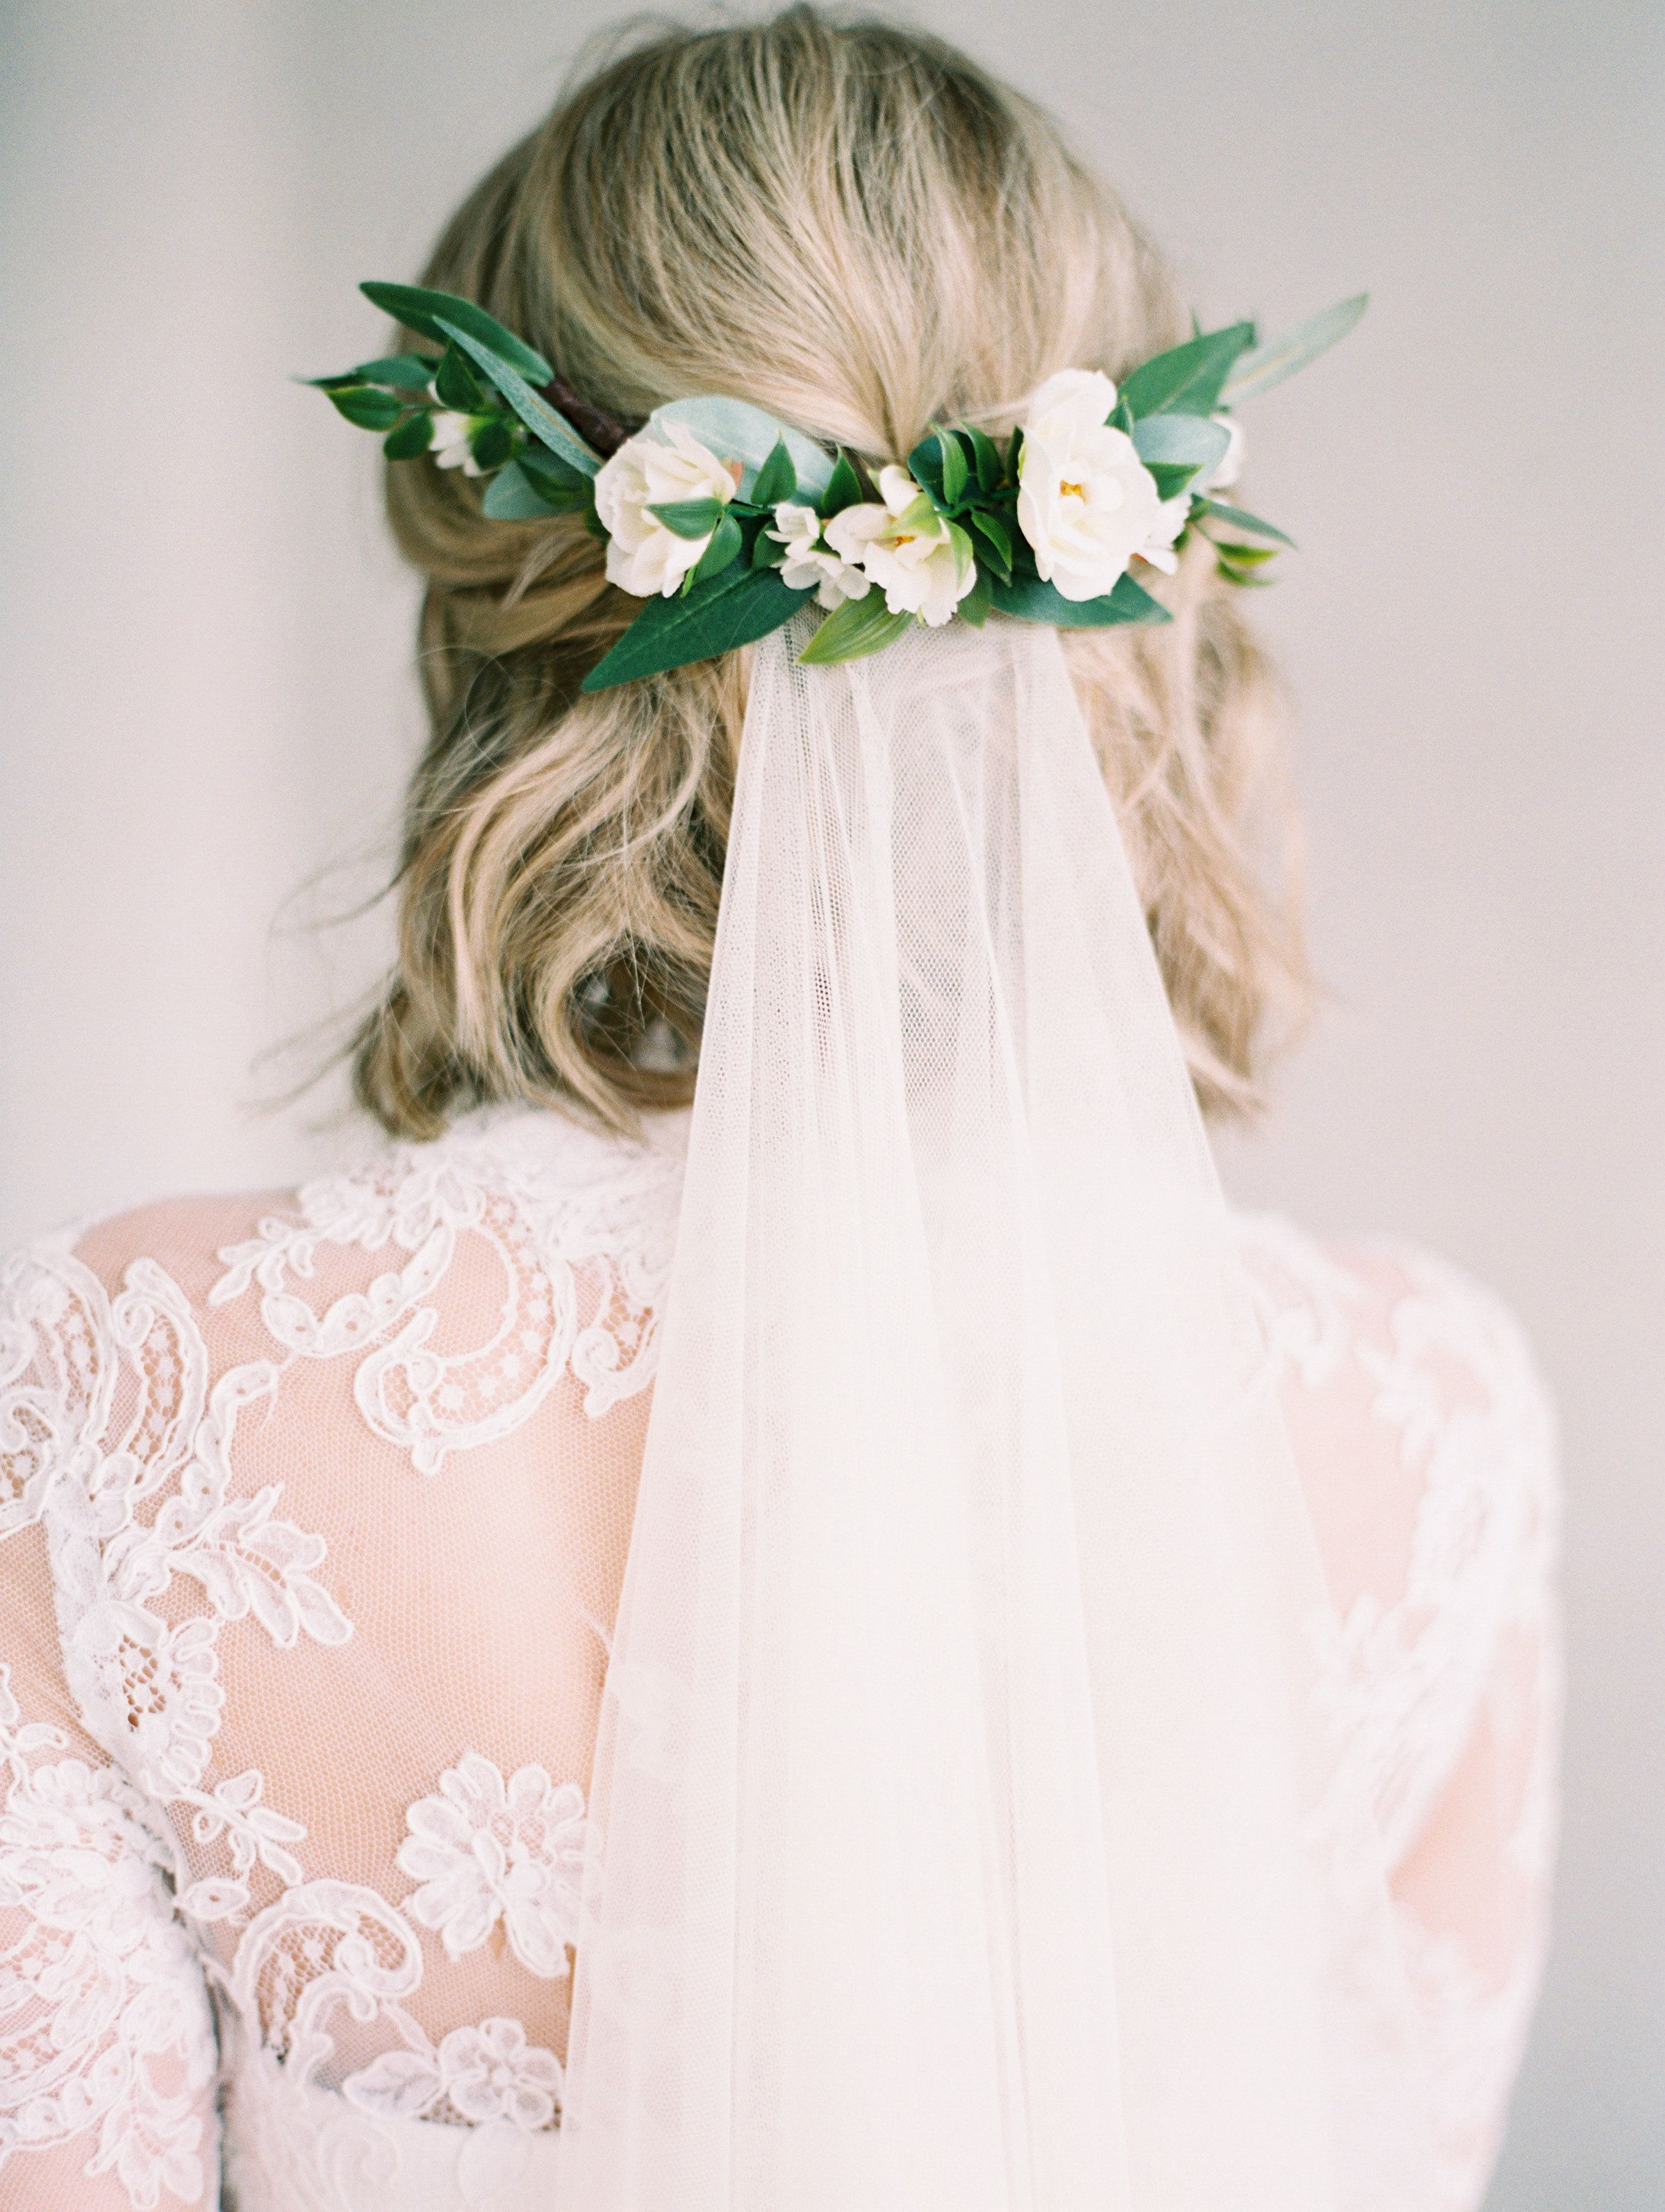 Ester Floral Comb created with Eucalyptus and Olive Leaves | Bride ...